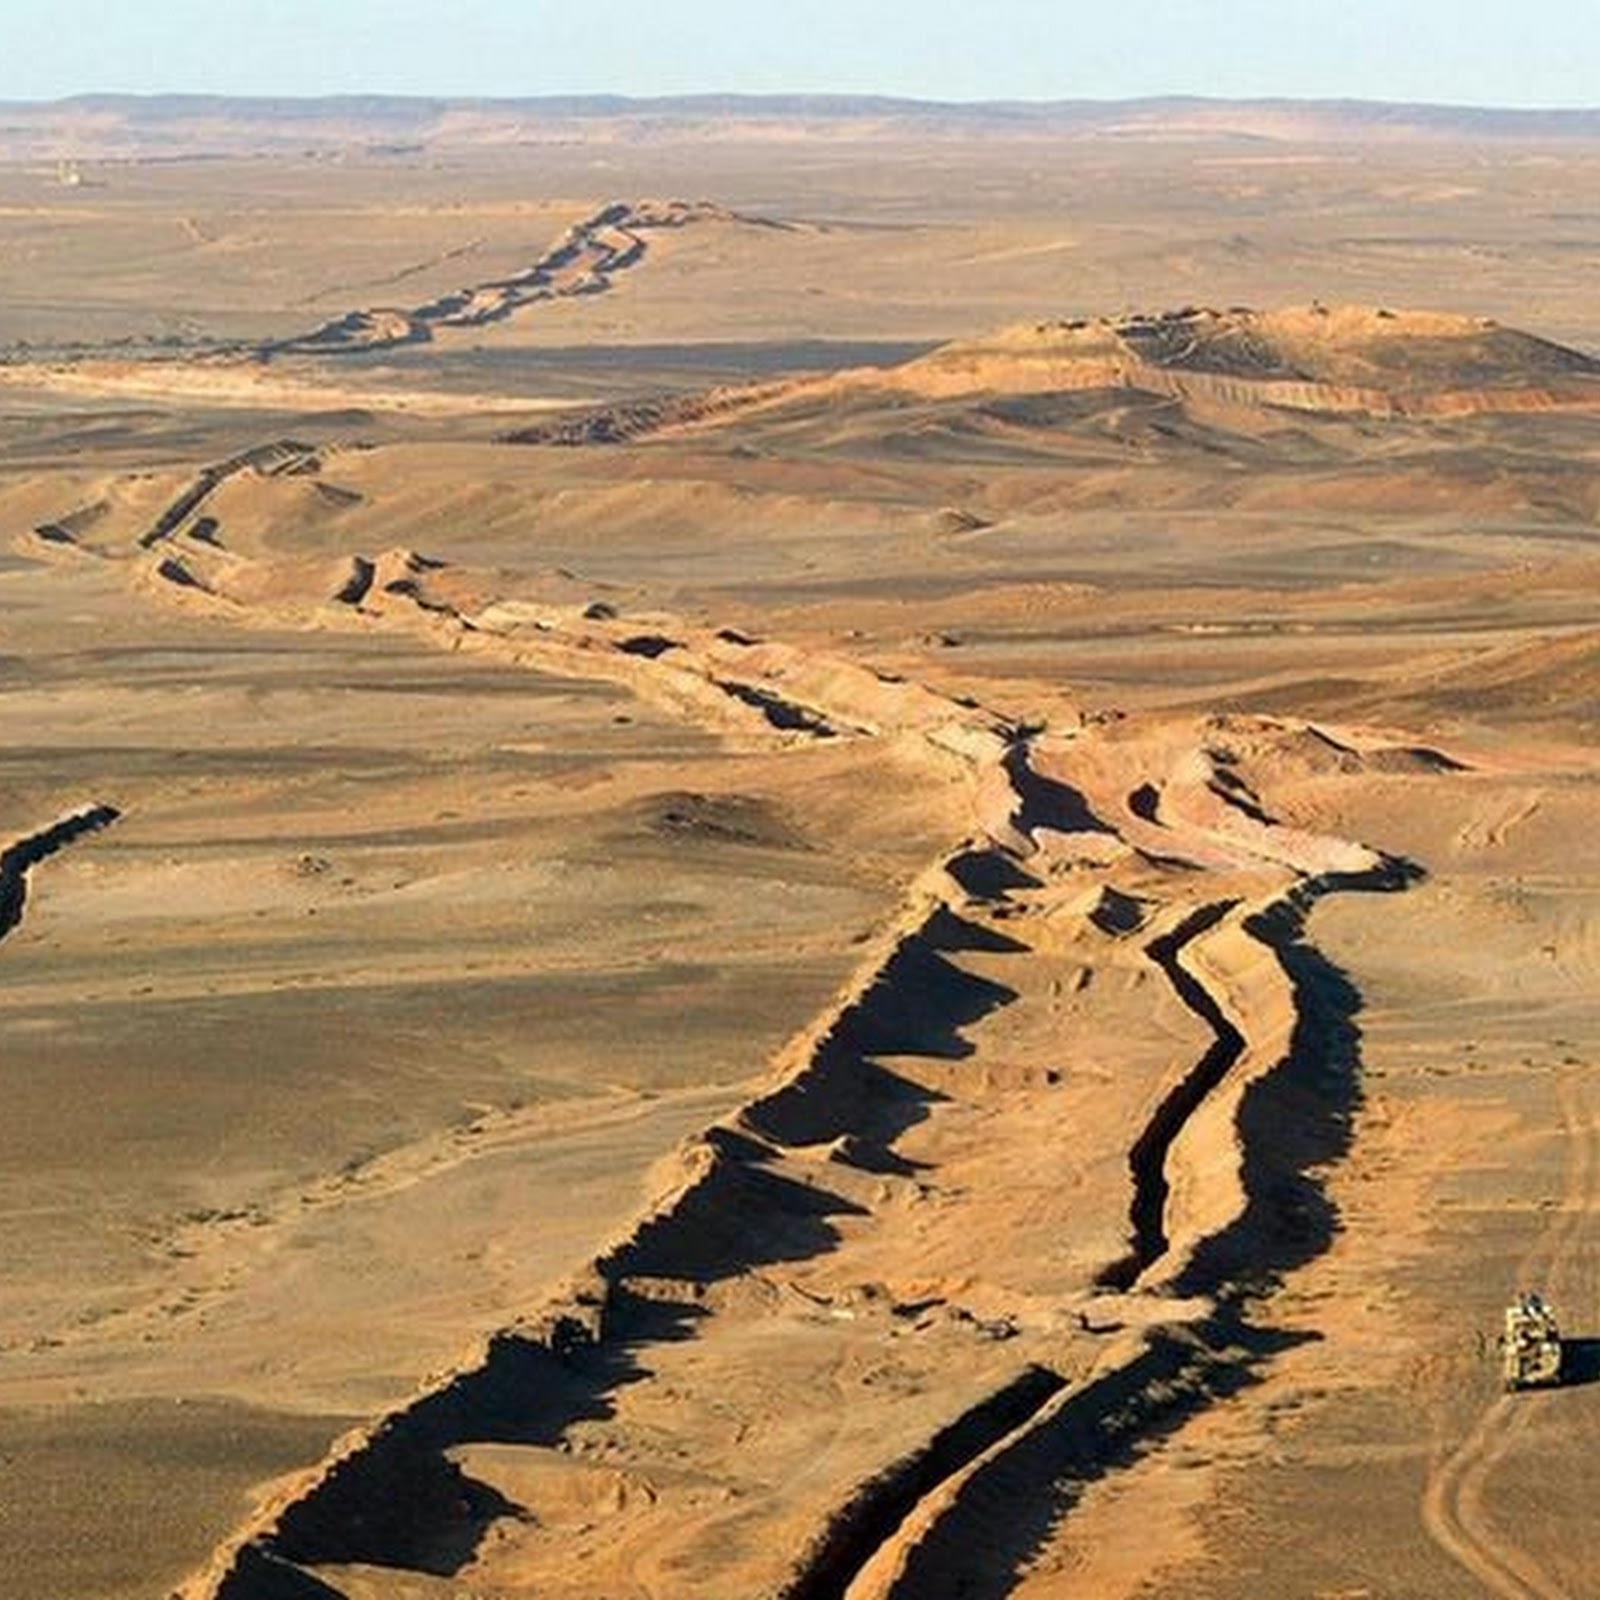 Moroccan Wall: The Longest Minefield in The World